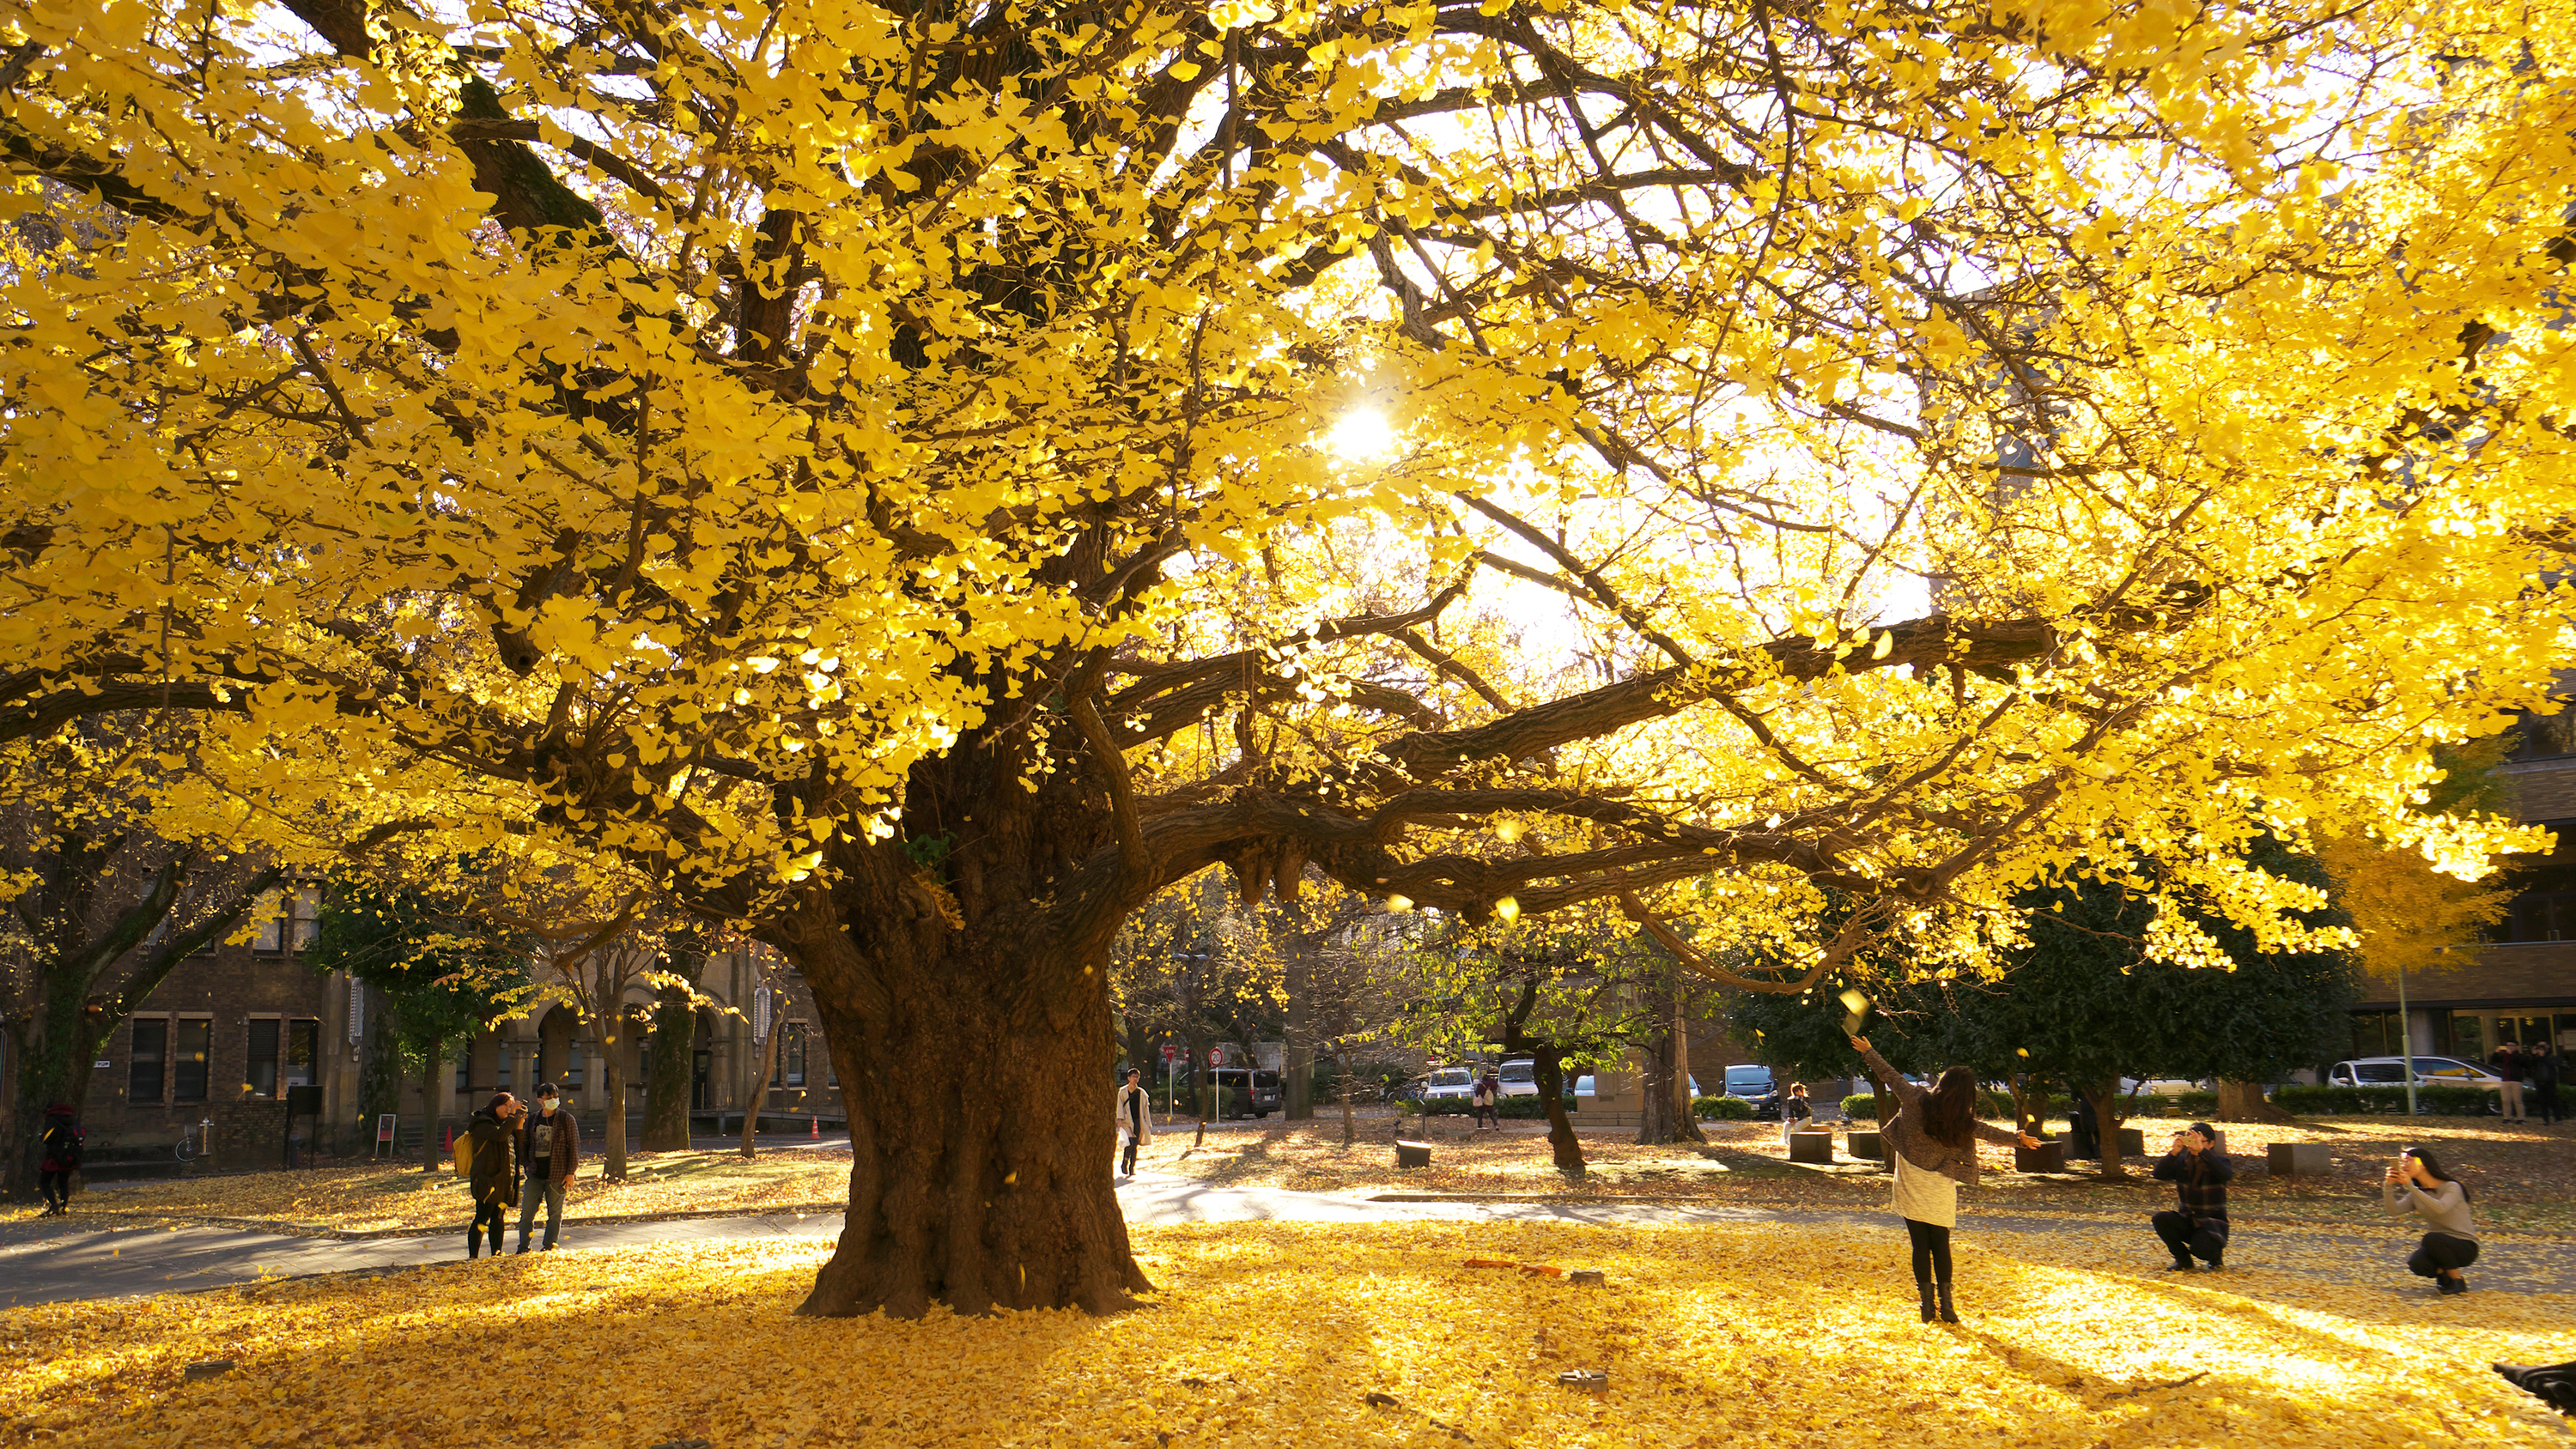 Autumn leaves at University of Tokyo